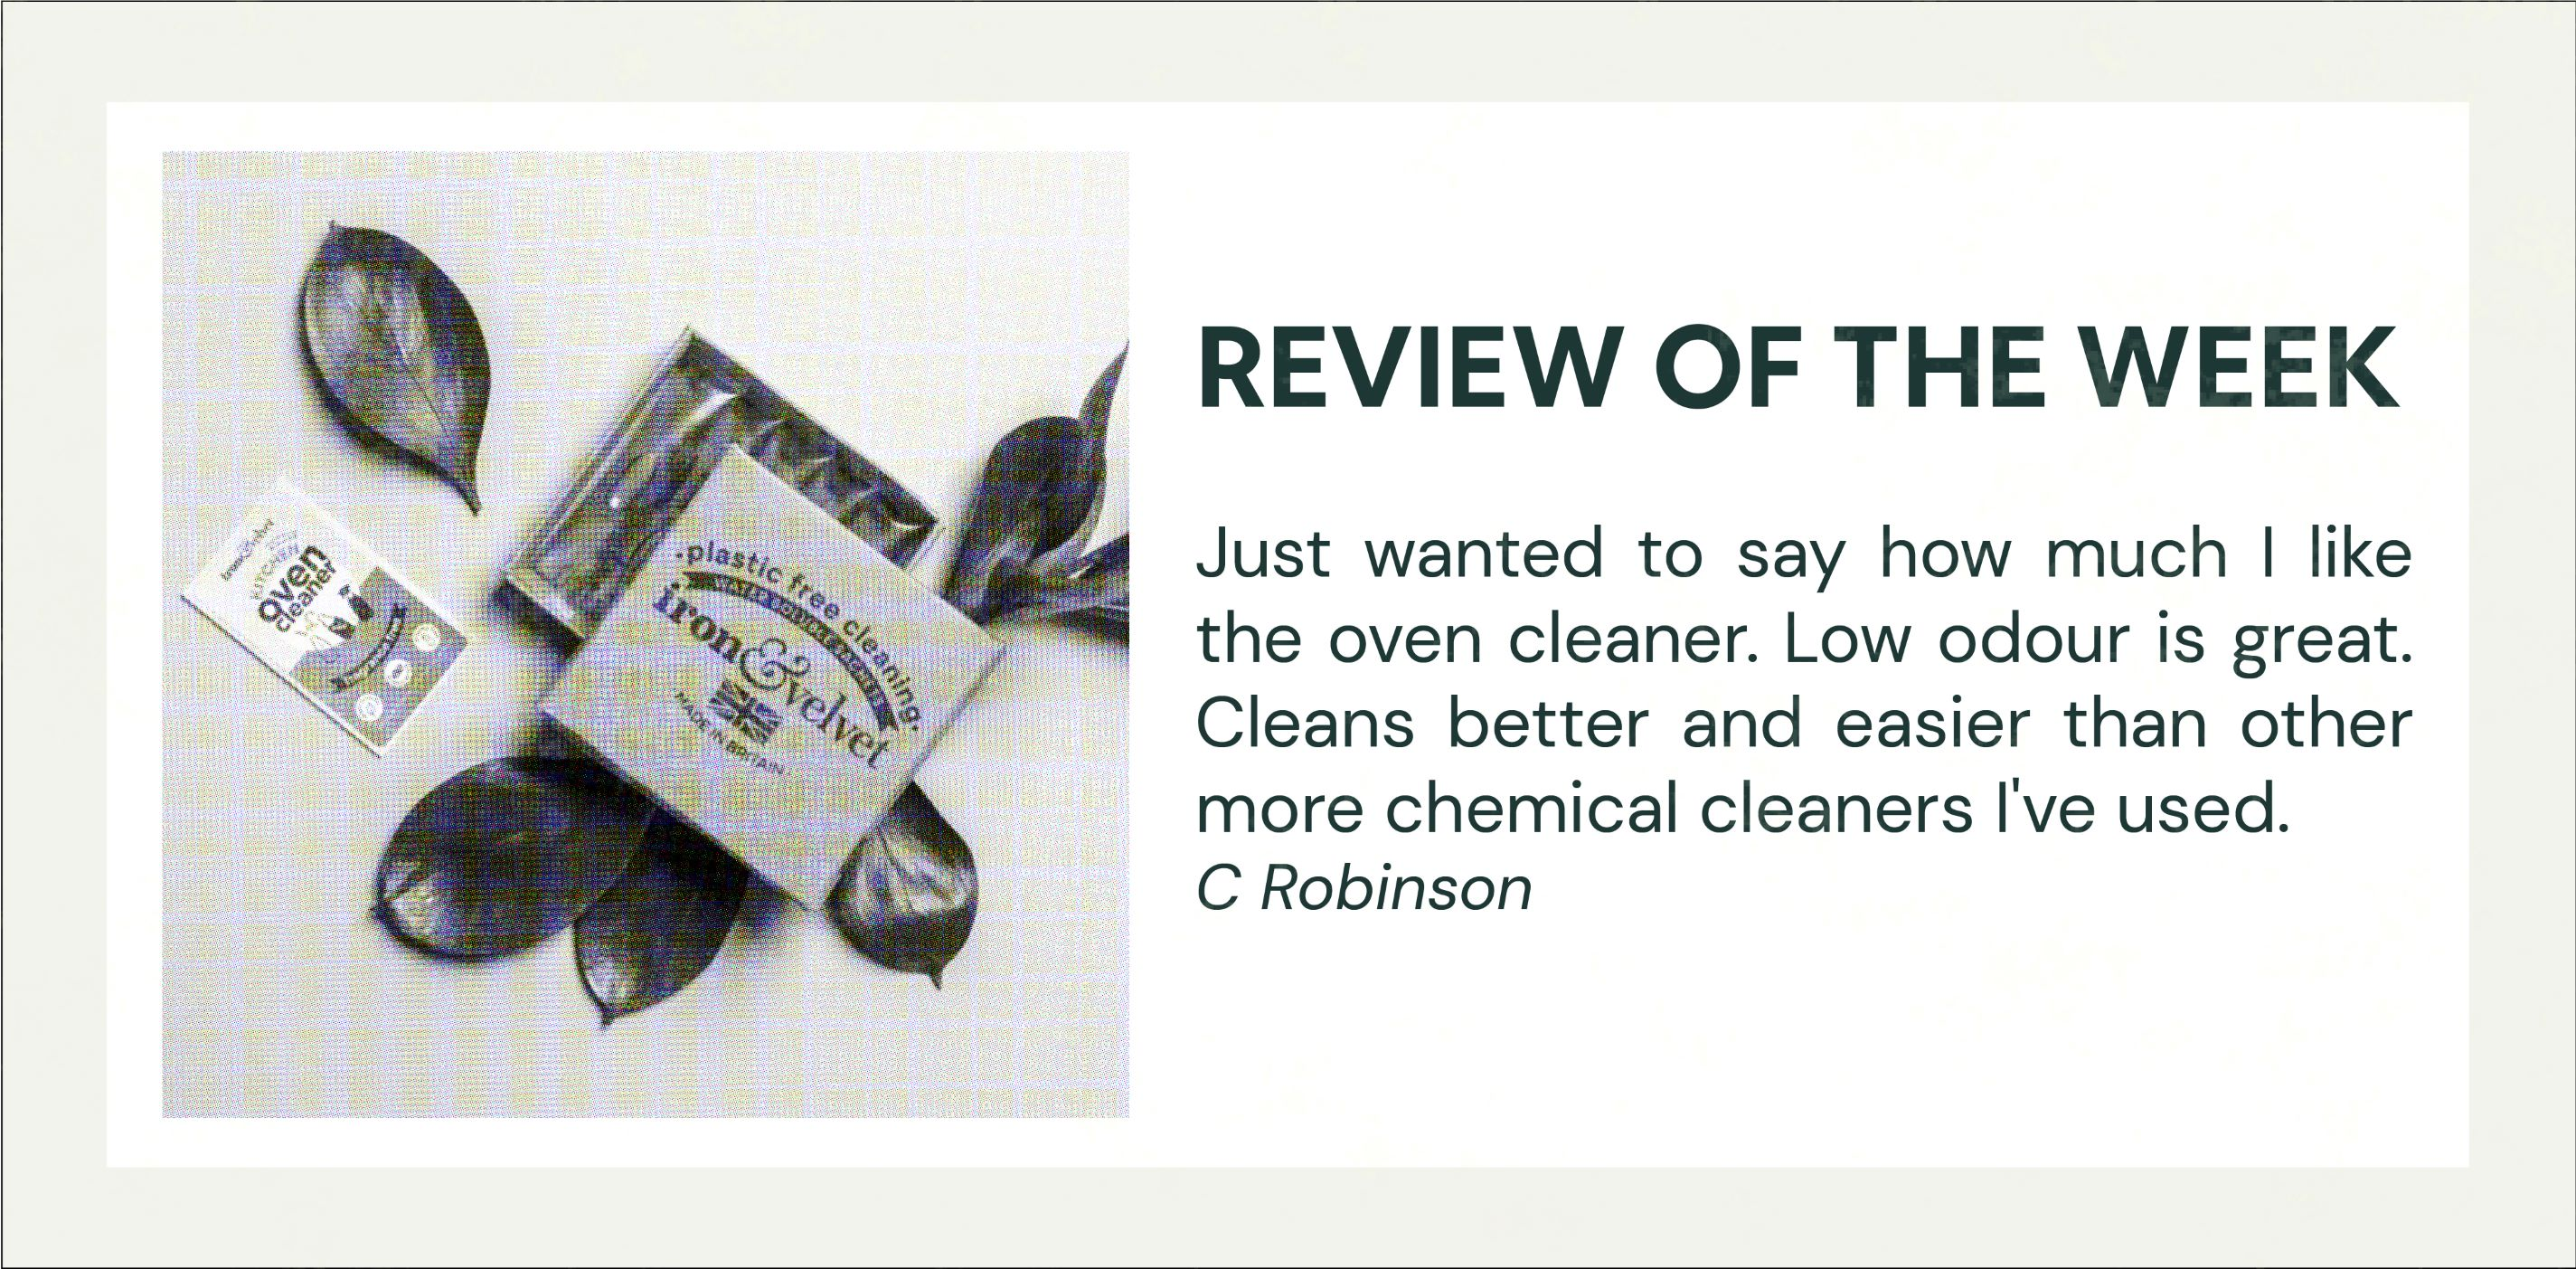 Review of the week